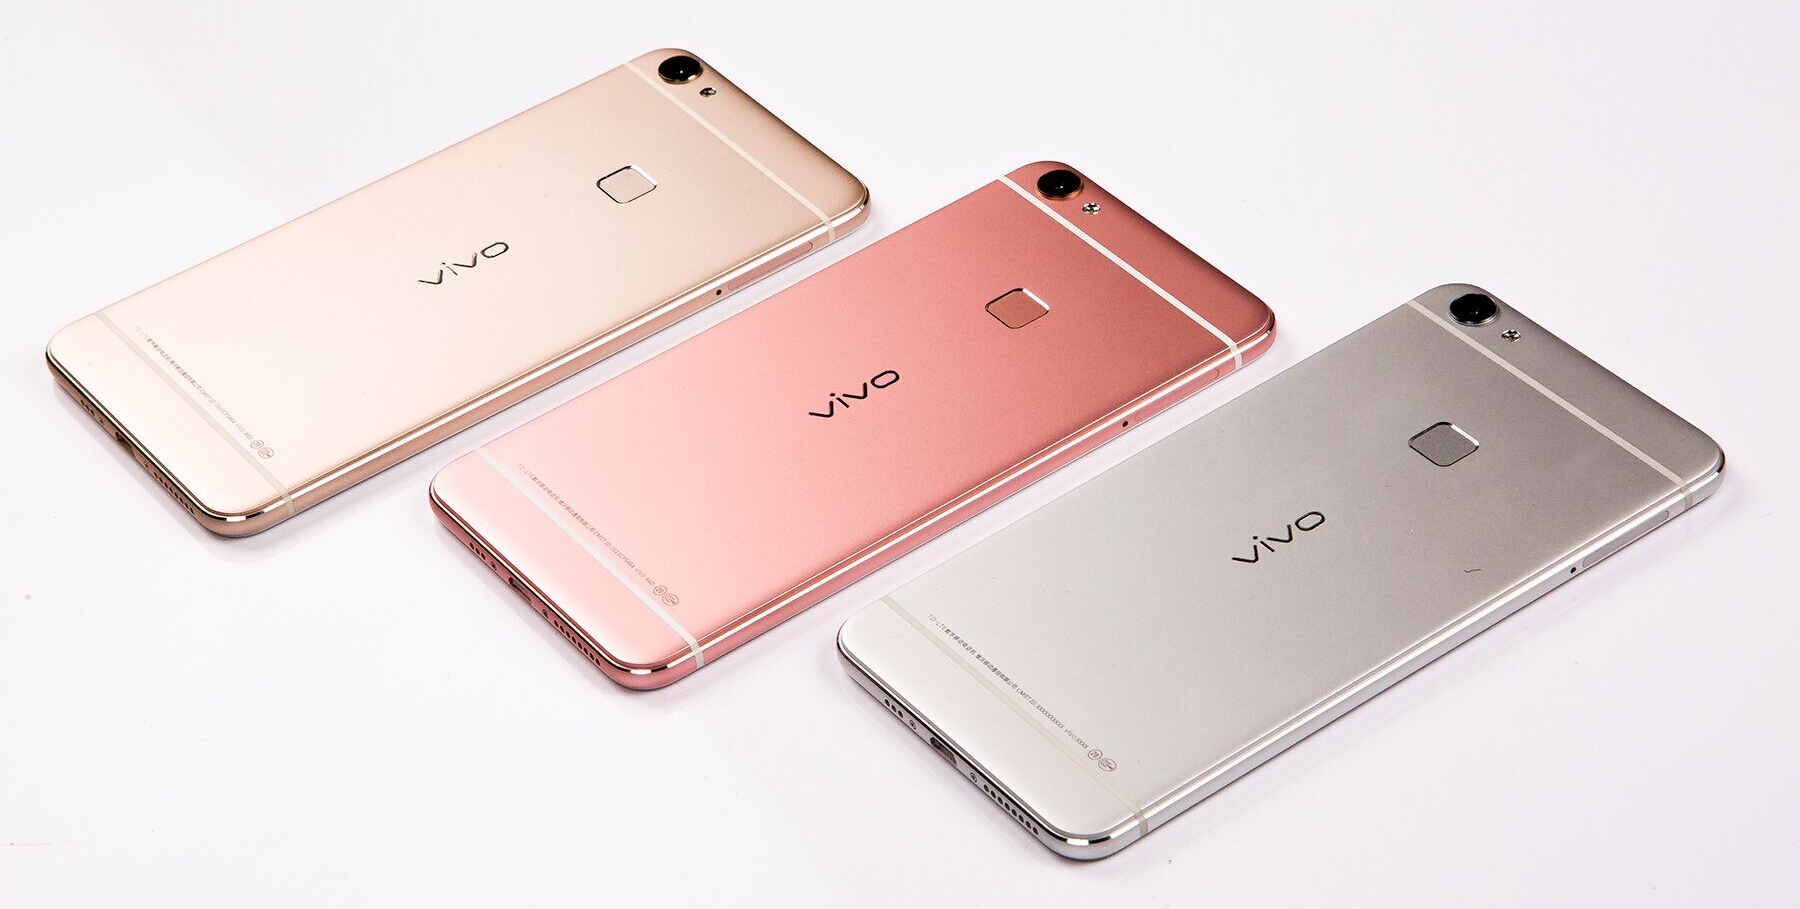 Photo of Usung Kamera Depan 16MP, Vivo Y67 Siap Saingi Oppo F1s